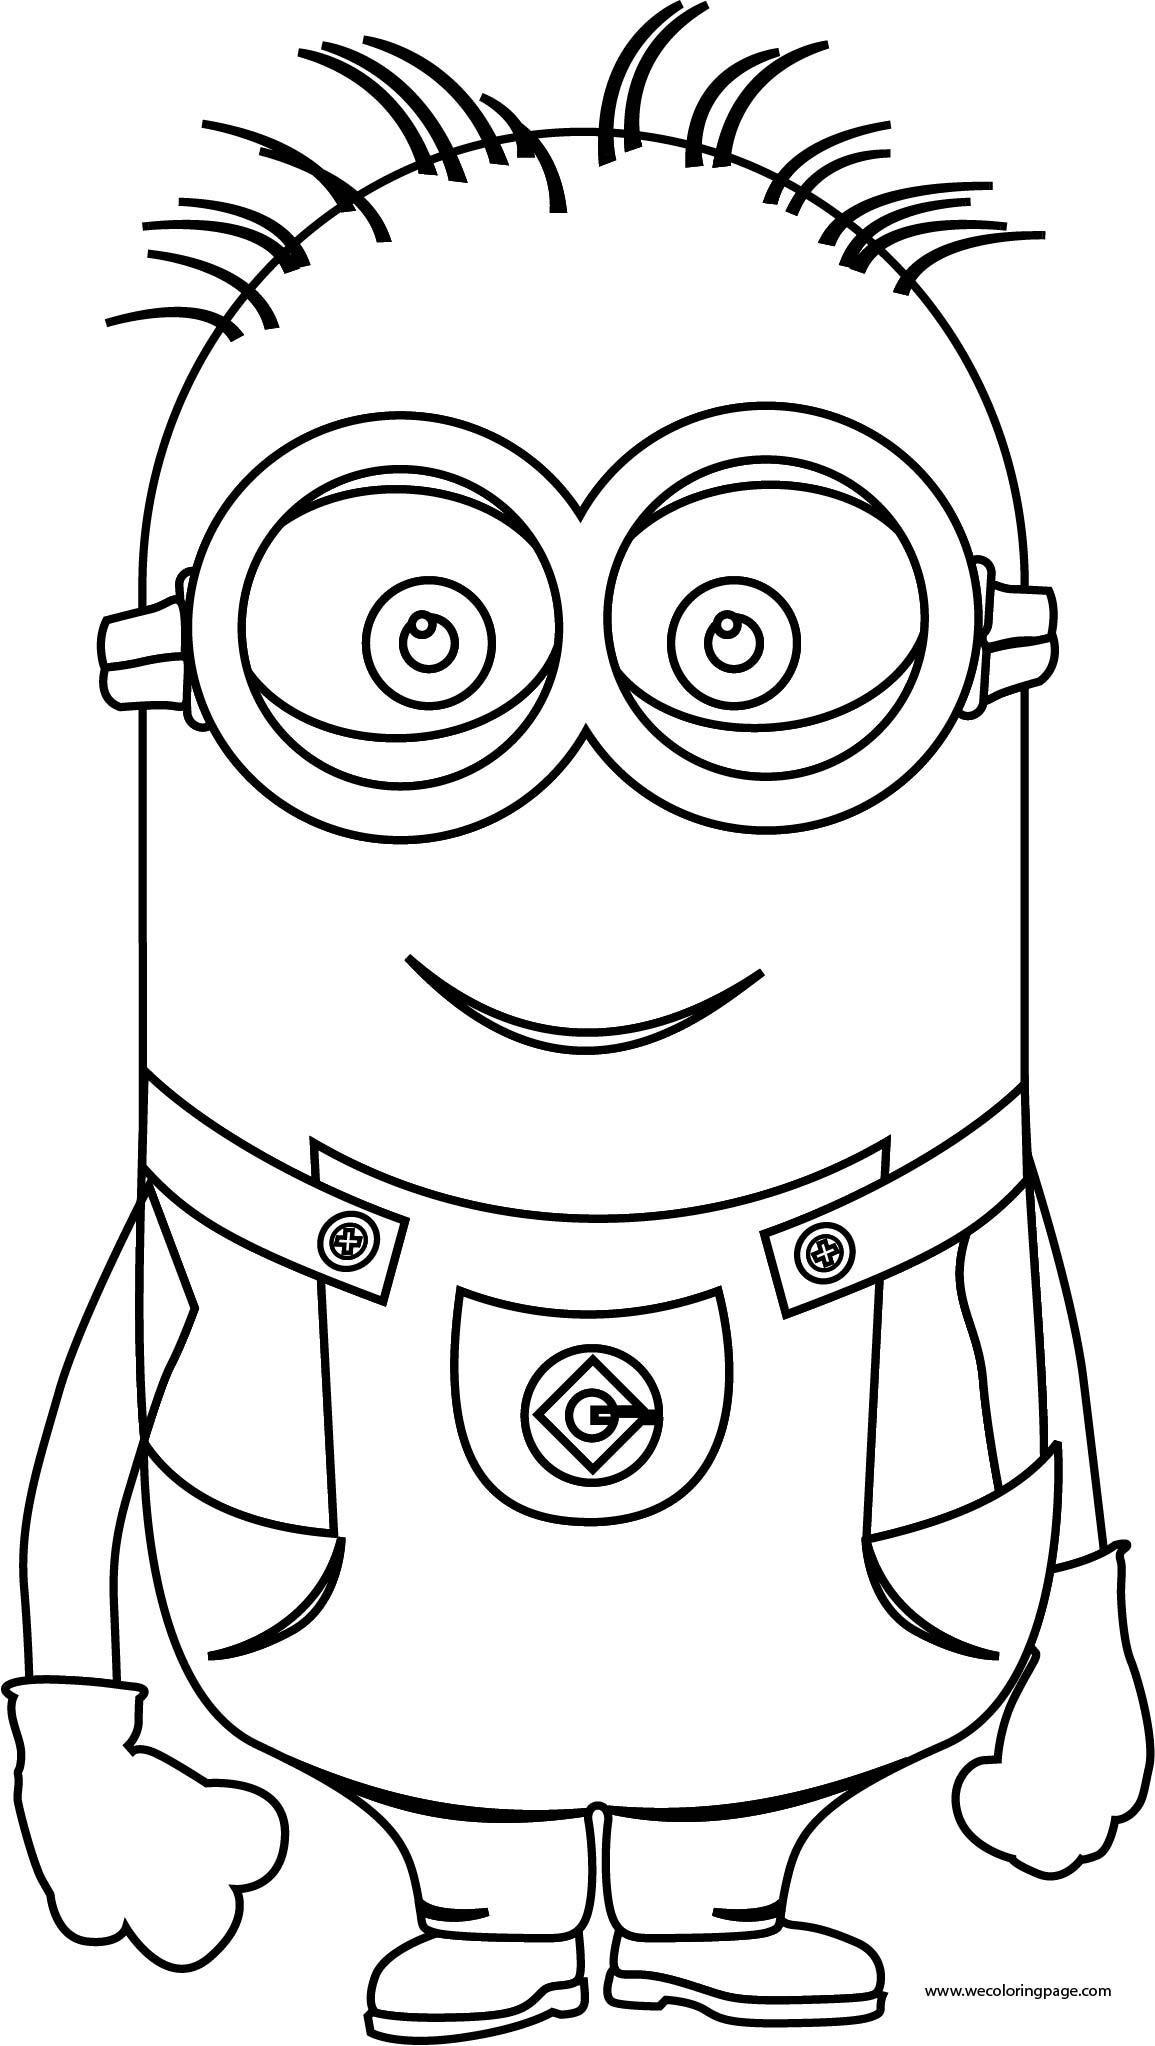 Tall Big Minion Coloring Page